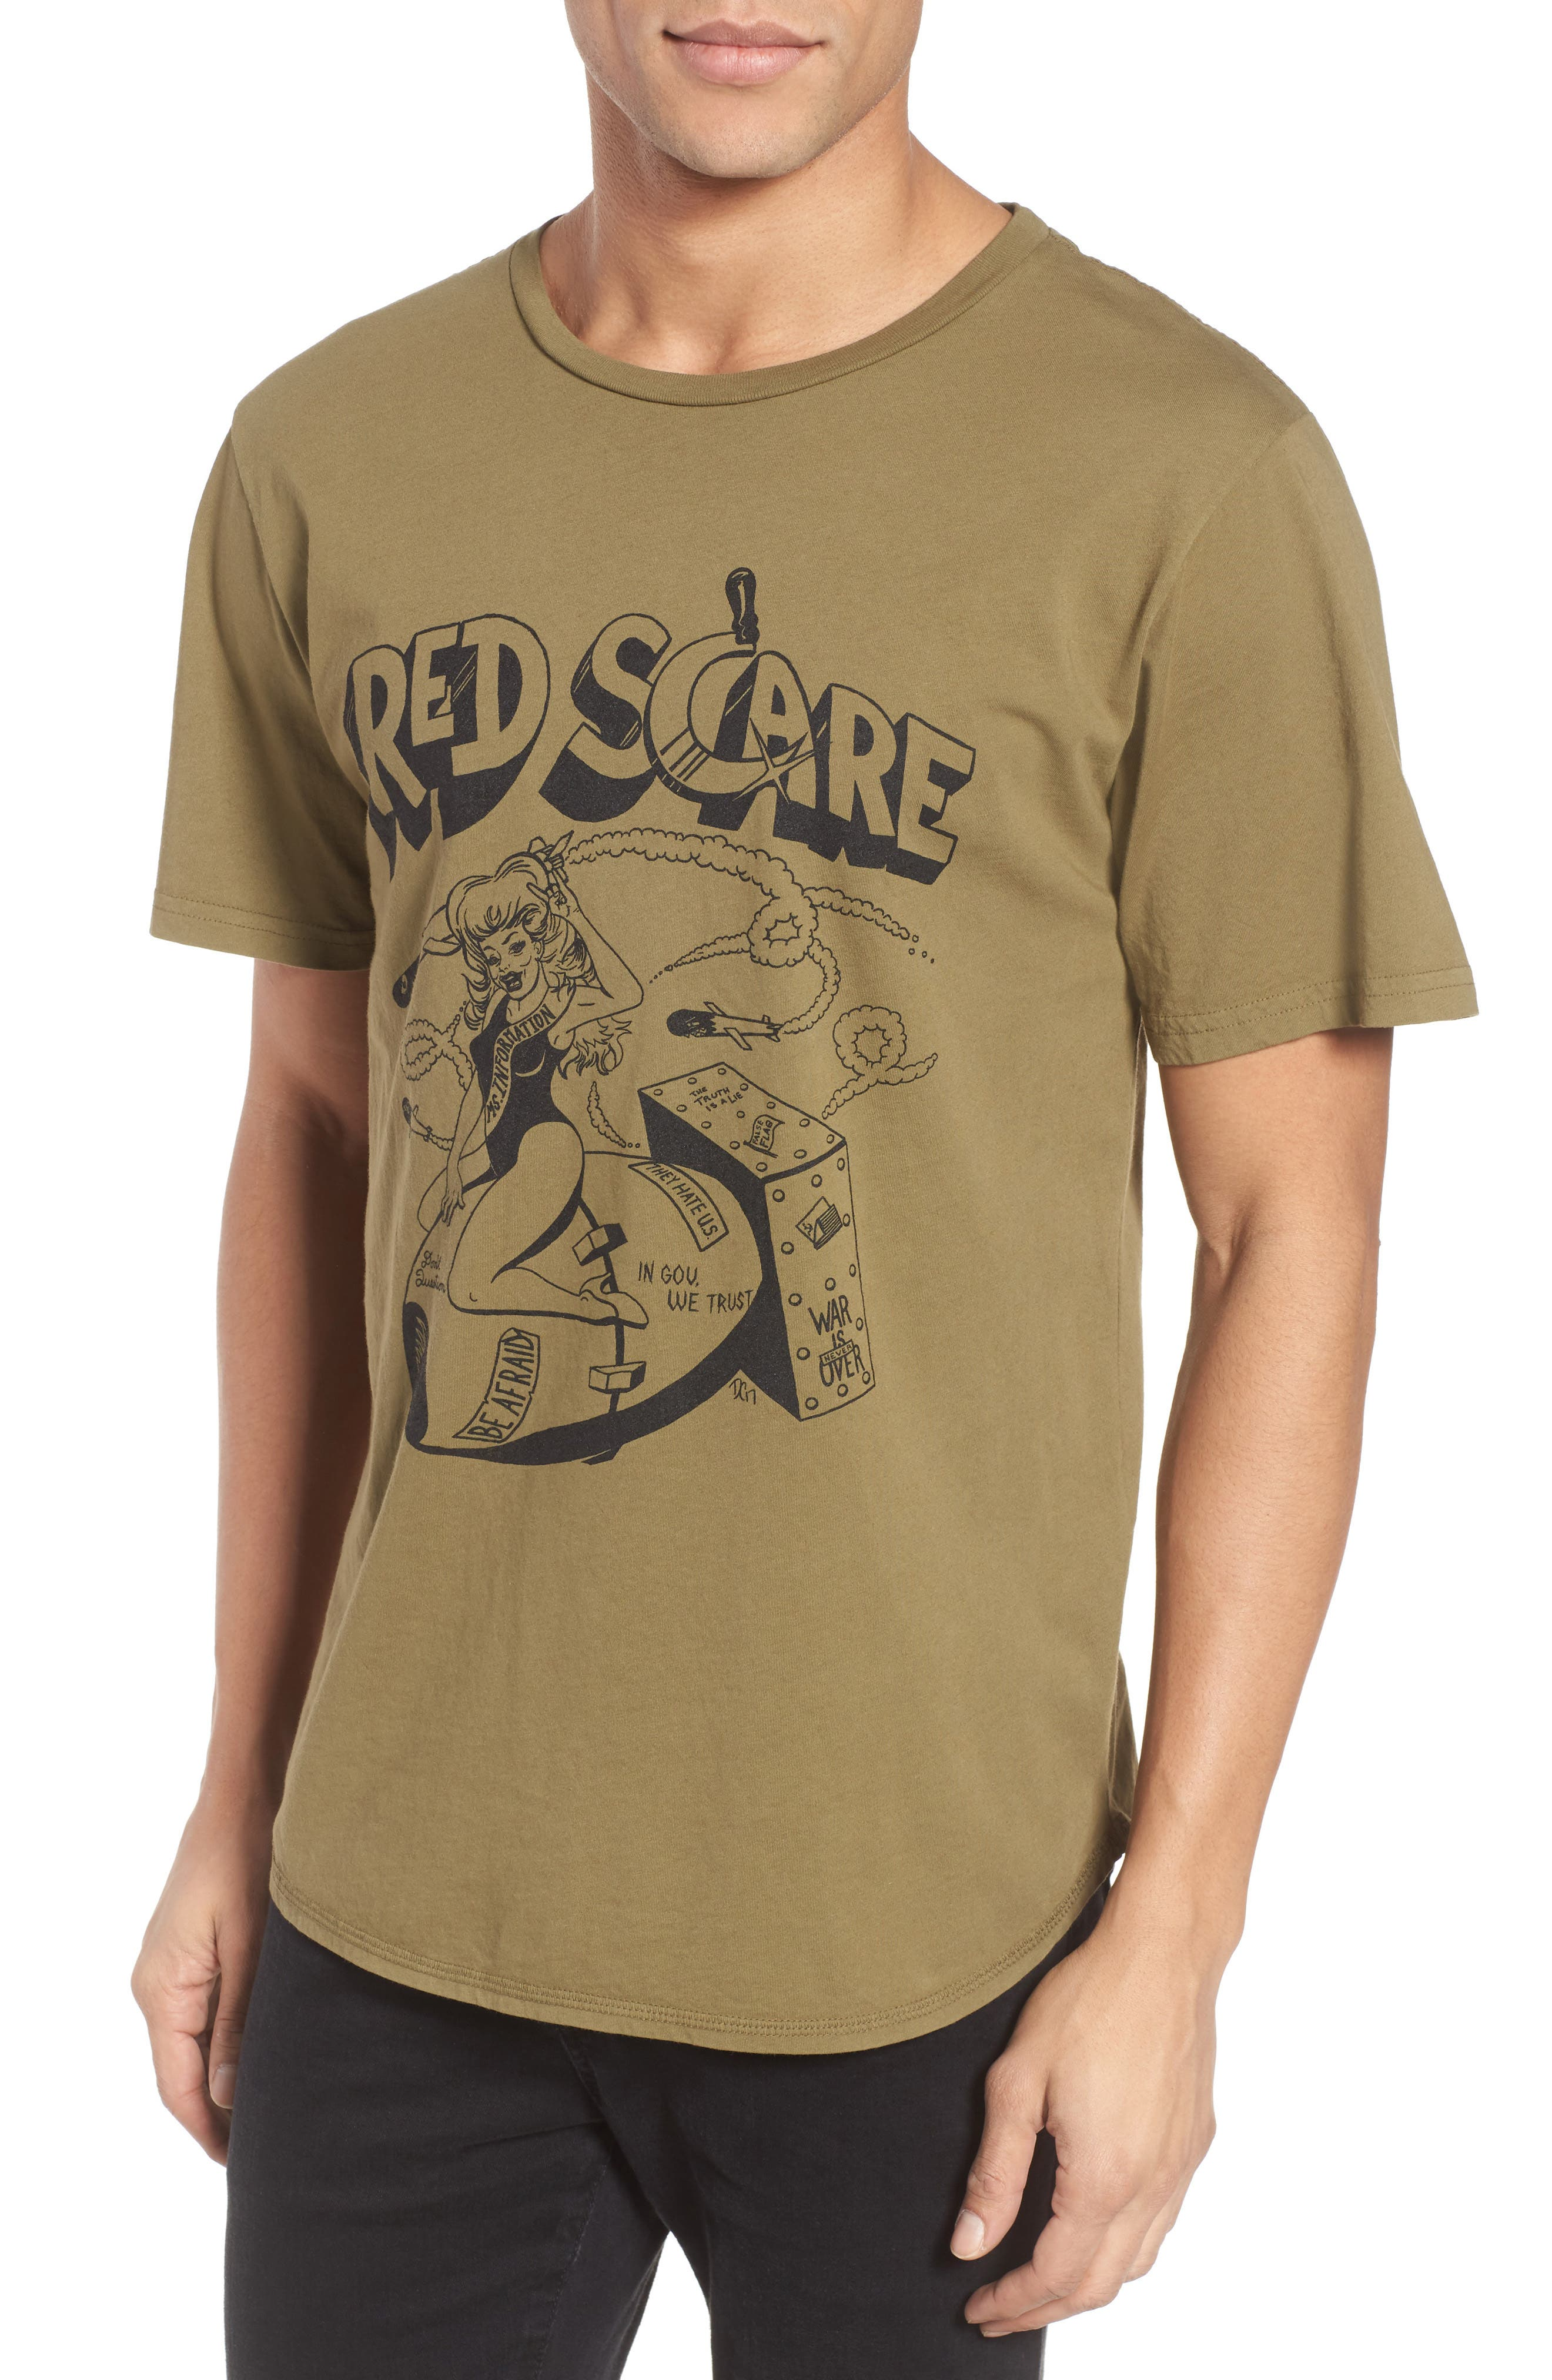 Red Scare Graphic T-Shirt,                             Main thumbnail 1, color,                             300